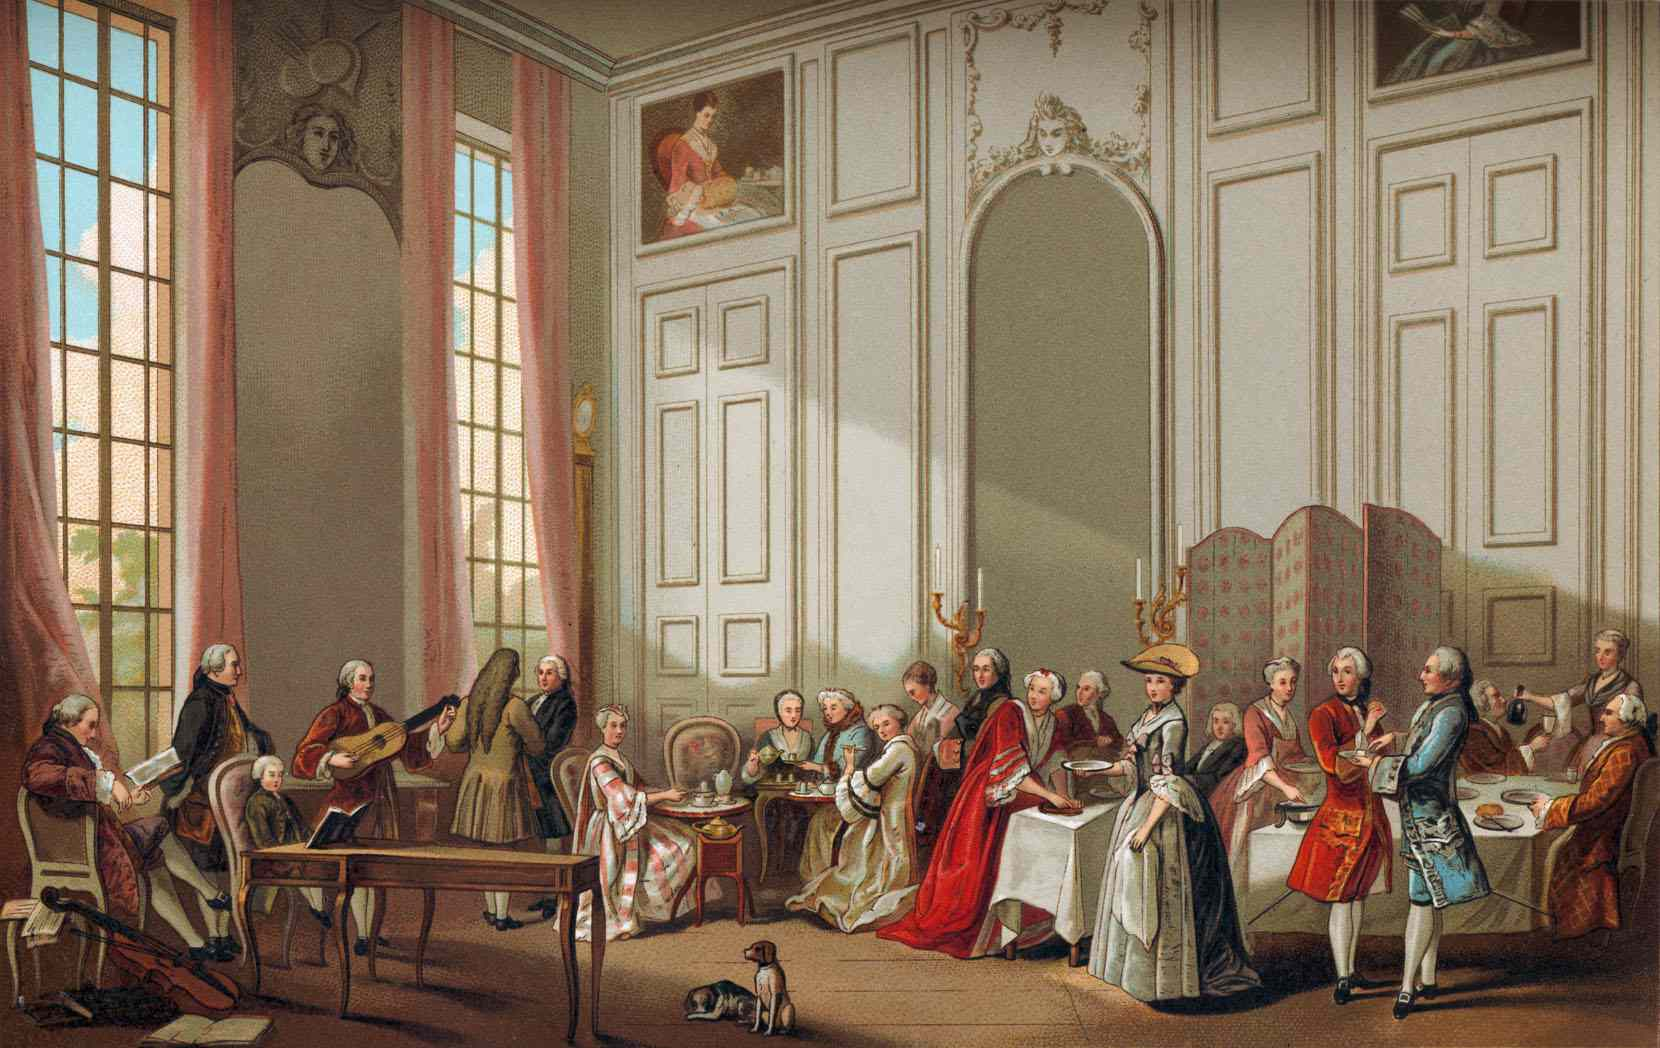 Daily life in French history: the aristocracy taking tea.